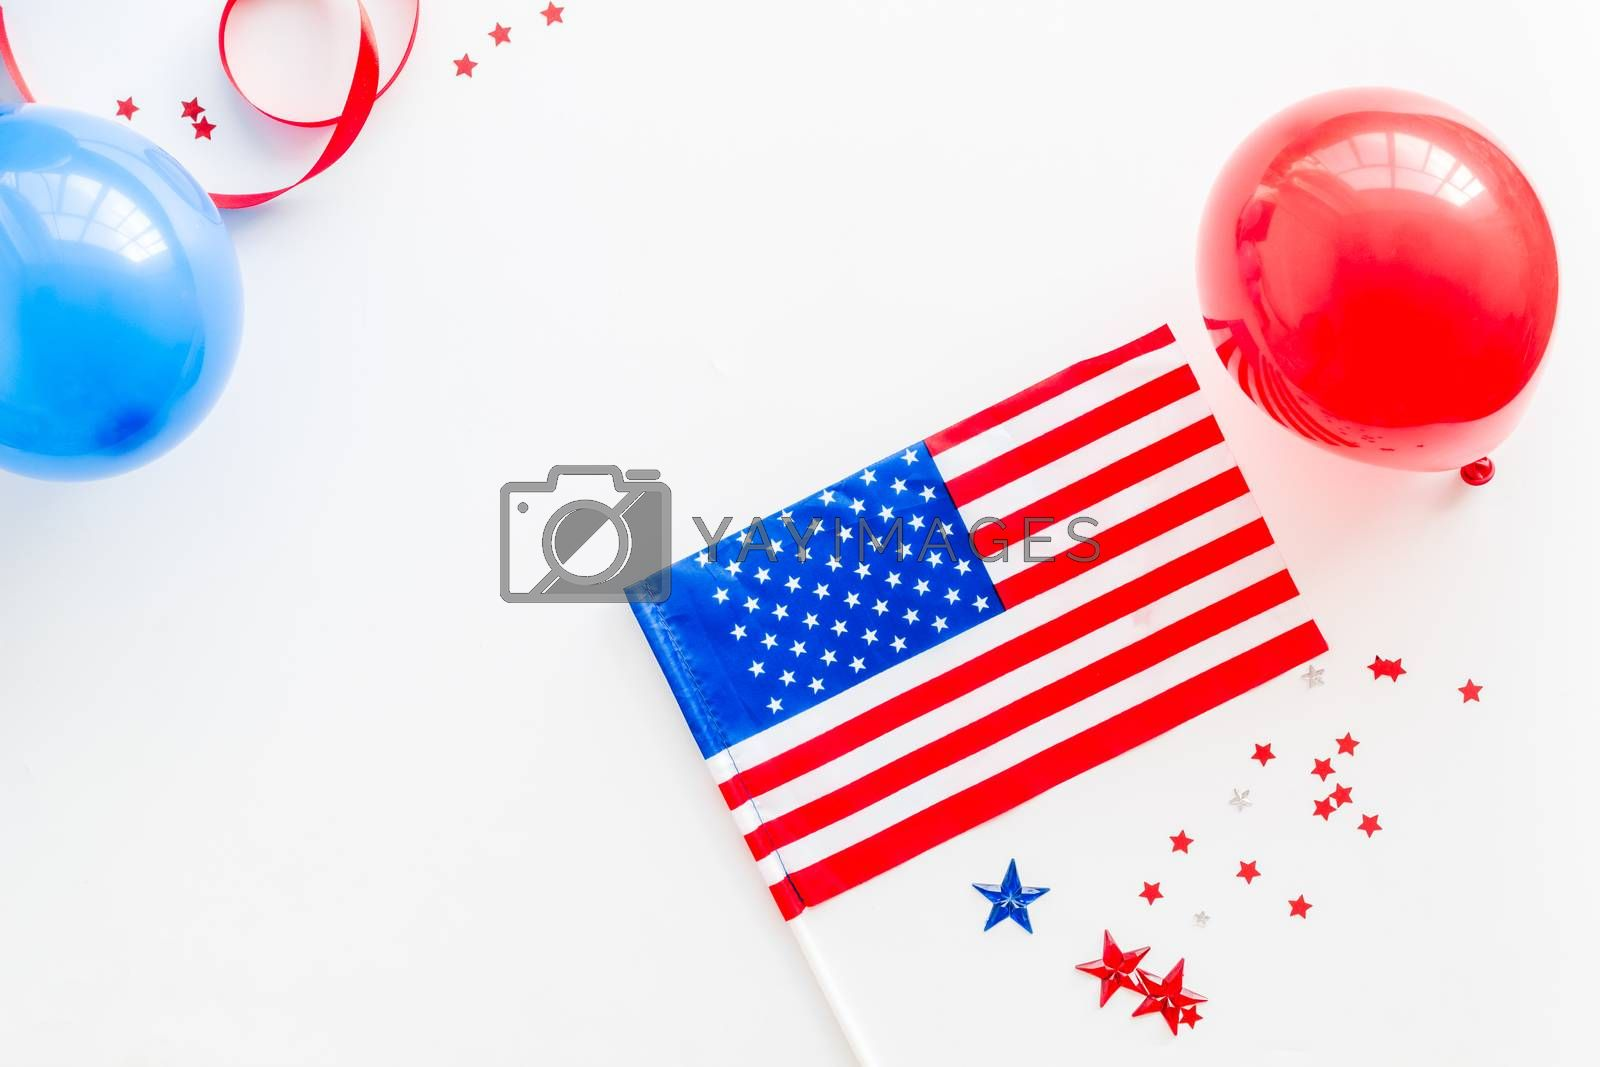 Royalty free image of 4th July greeting card with American flag and balloons flat lay copy space by 9dreamstudio